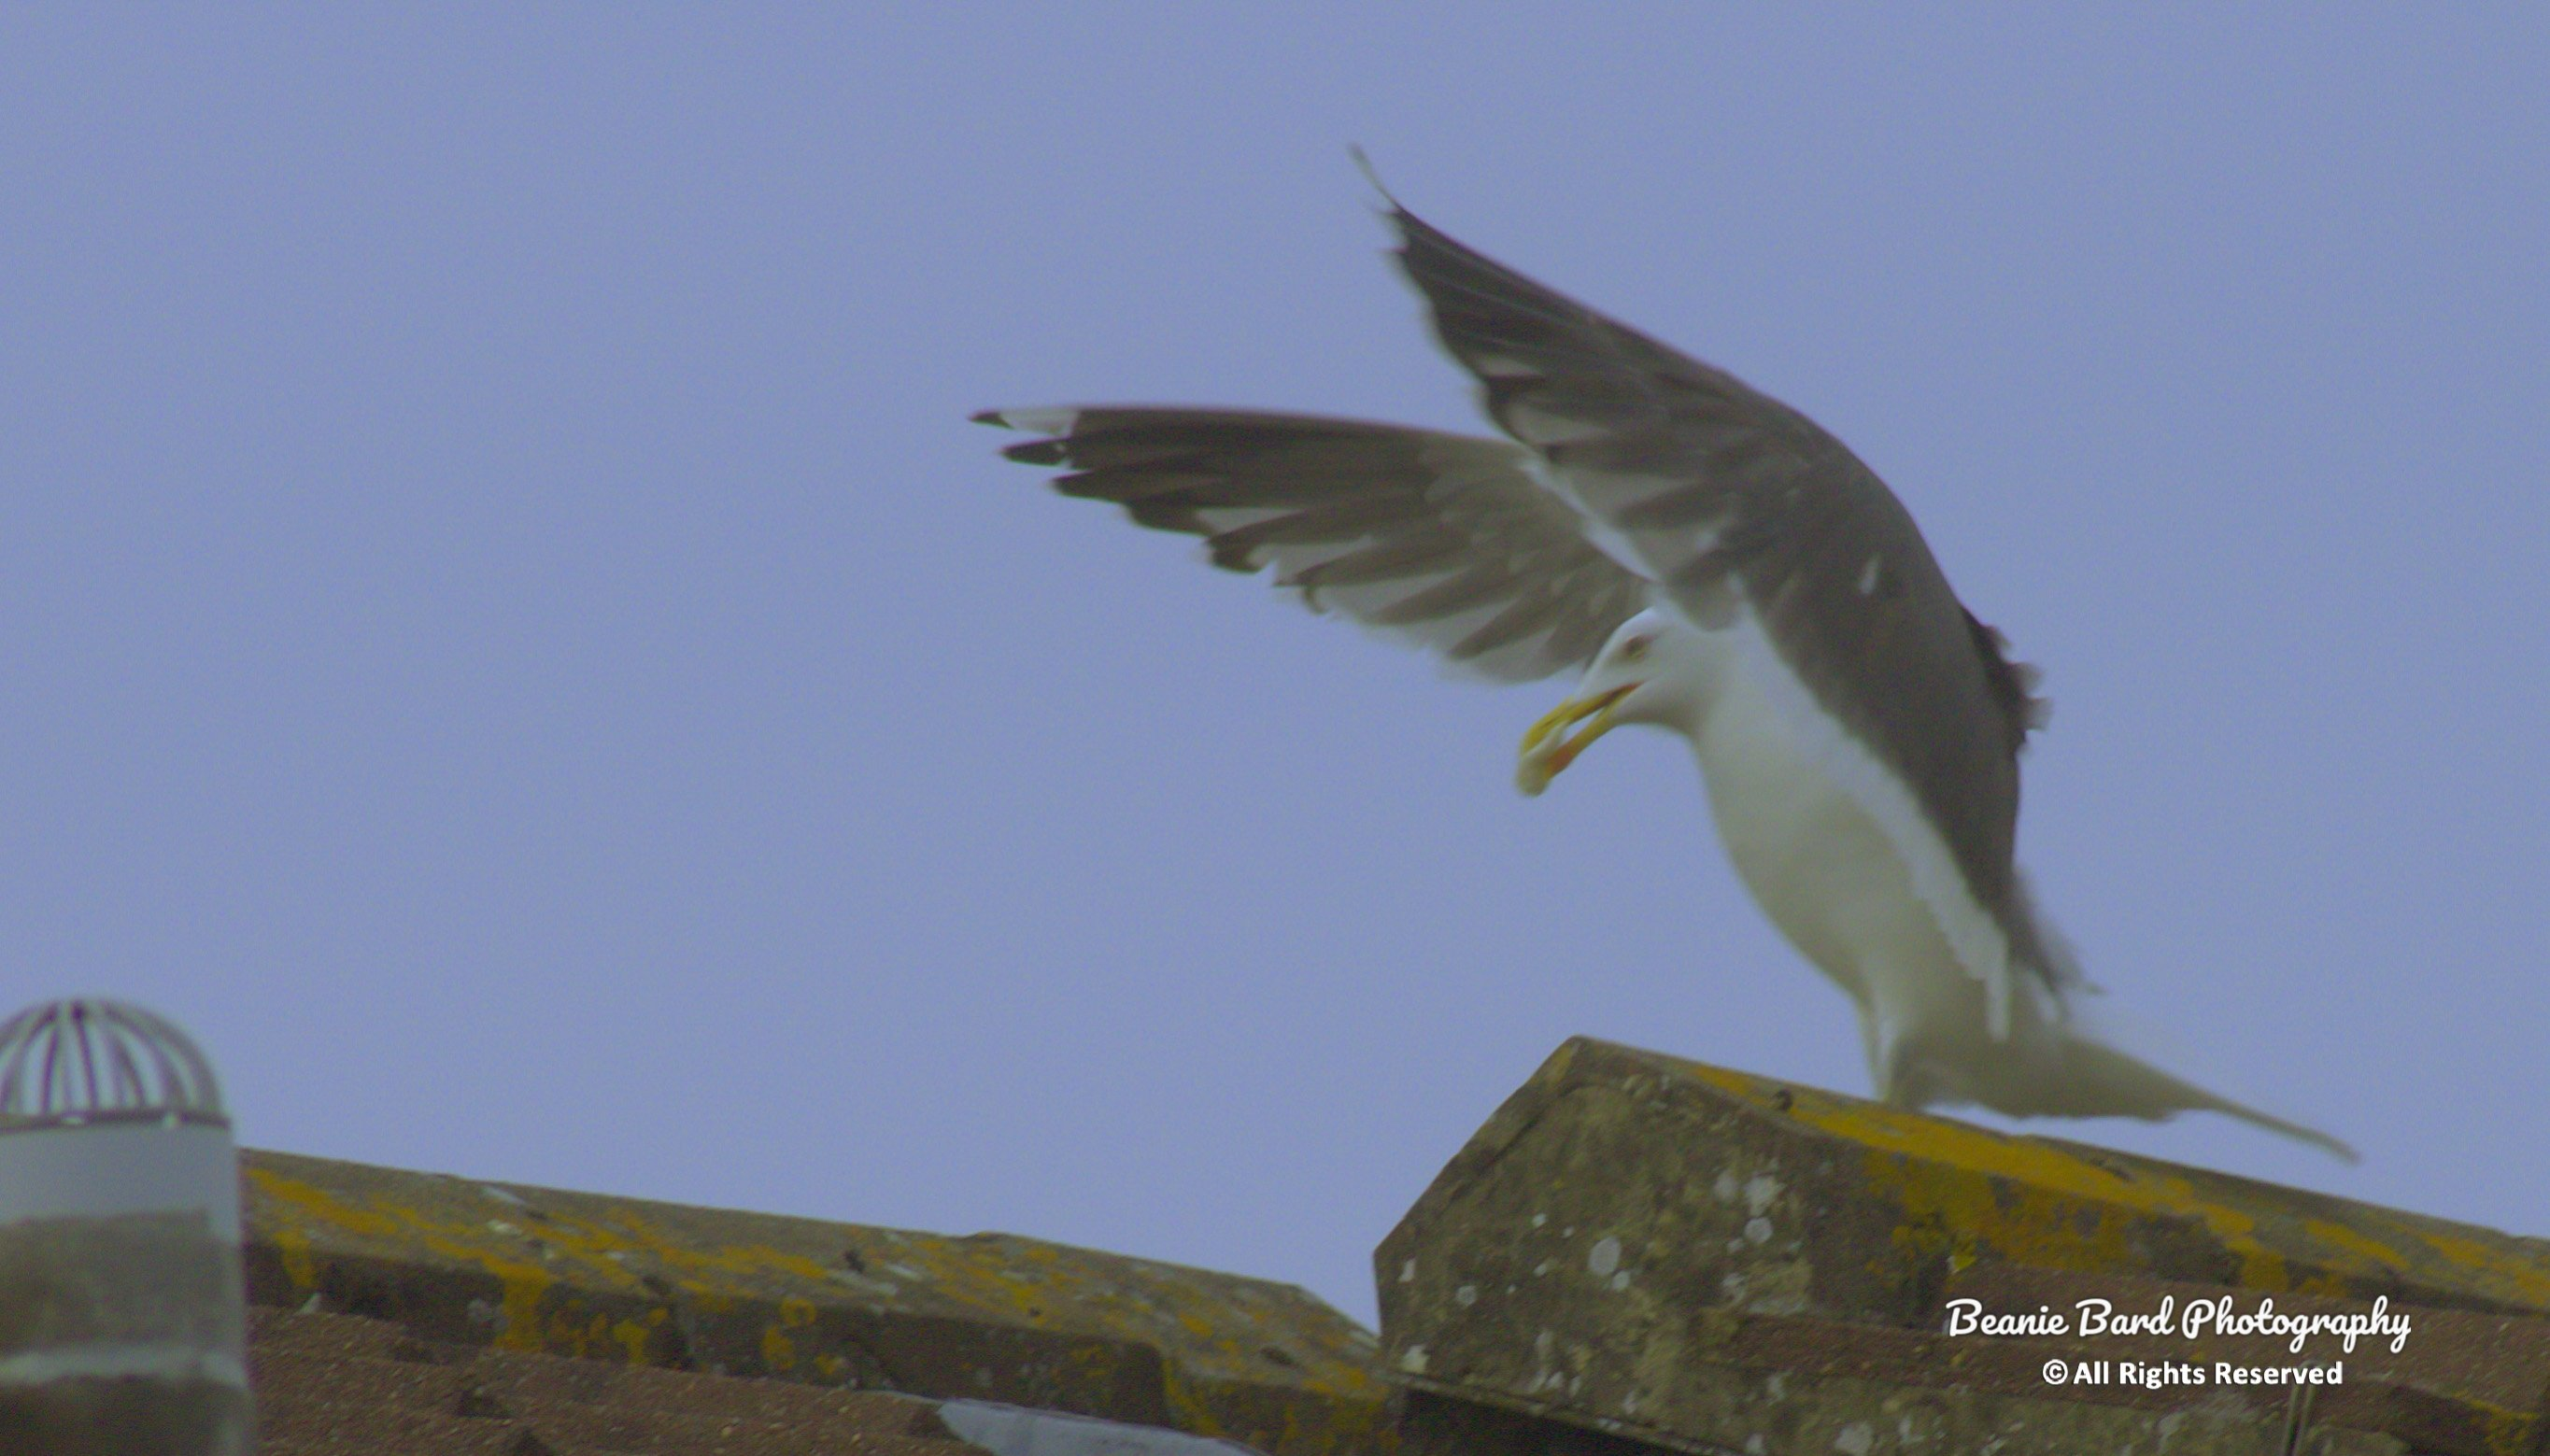 Seagull with wings outspread walking along a rooftop with food in its beak